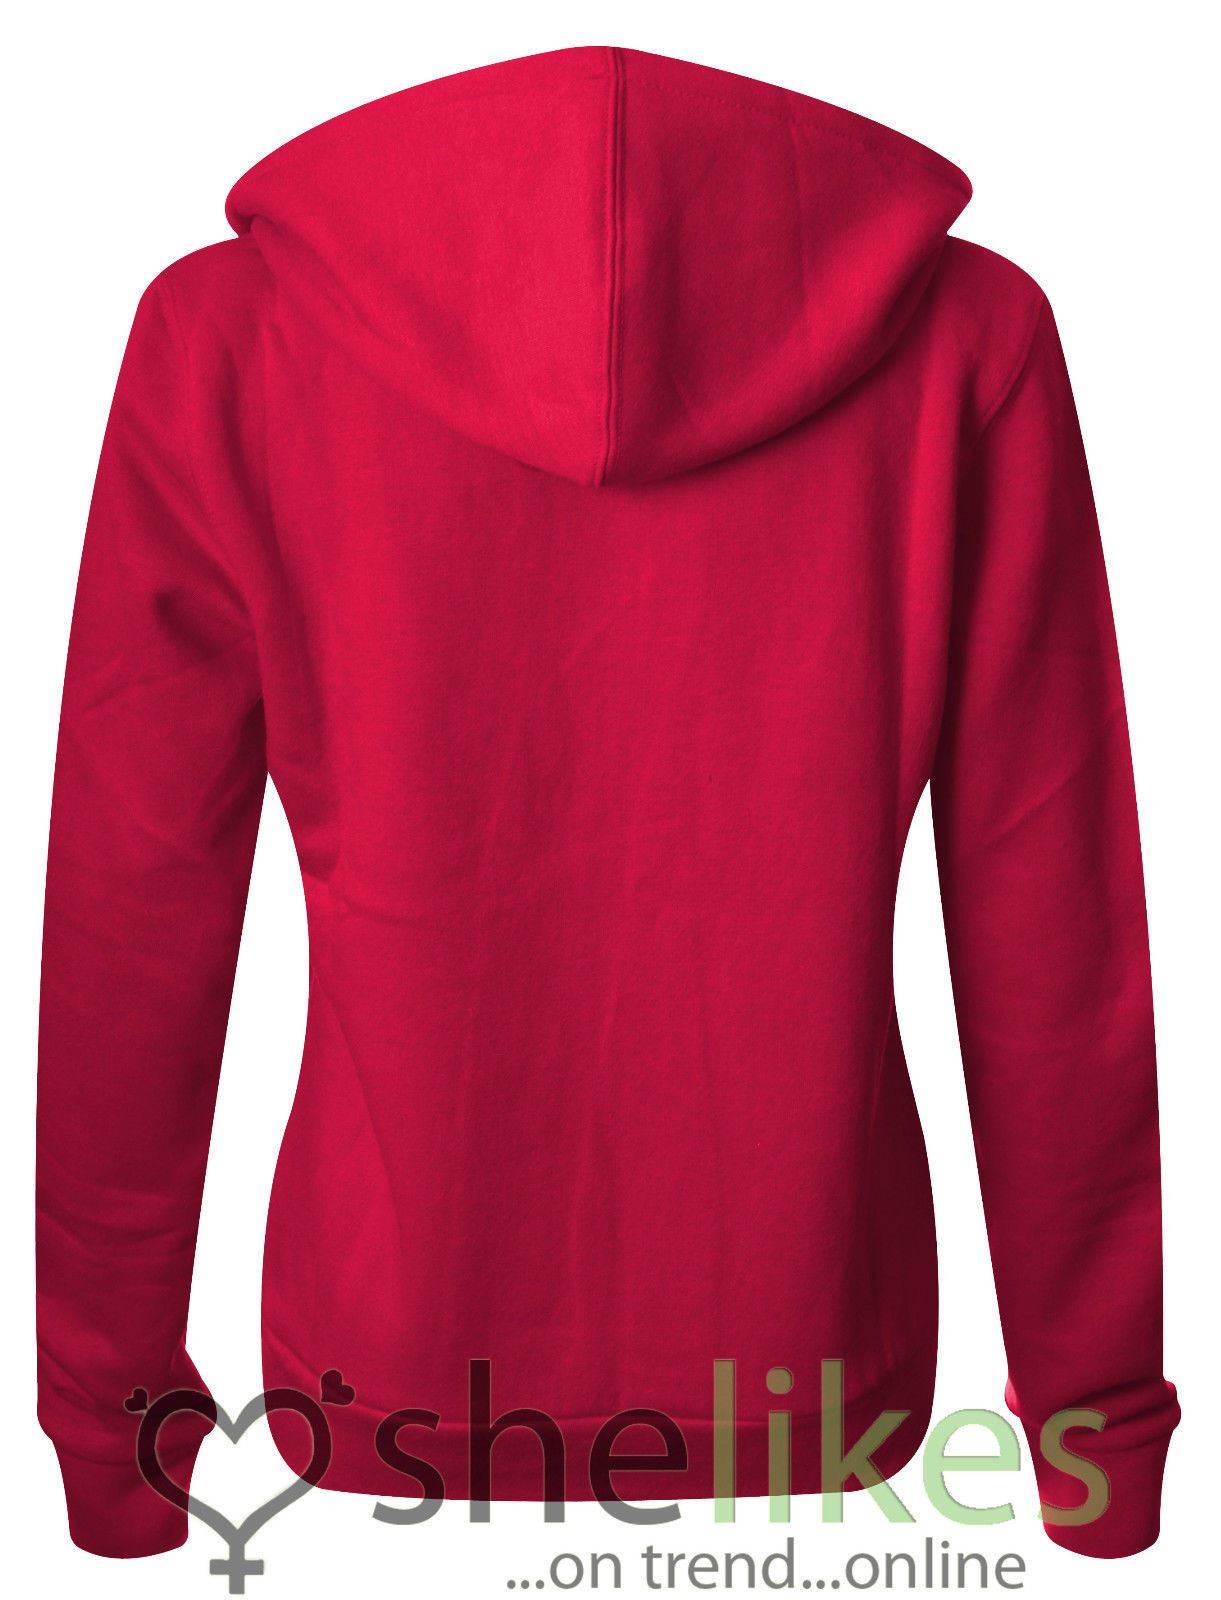 NEW-LADIES-WOMENS-PLUS-SIZE-FRONT-ZIP-HOODED-SWEATSHIRT-PLAIN-HOODIE-JACKET-TOP thumbnail 7